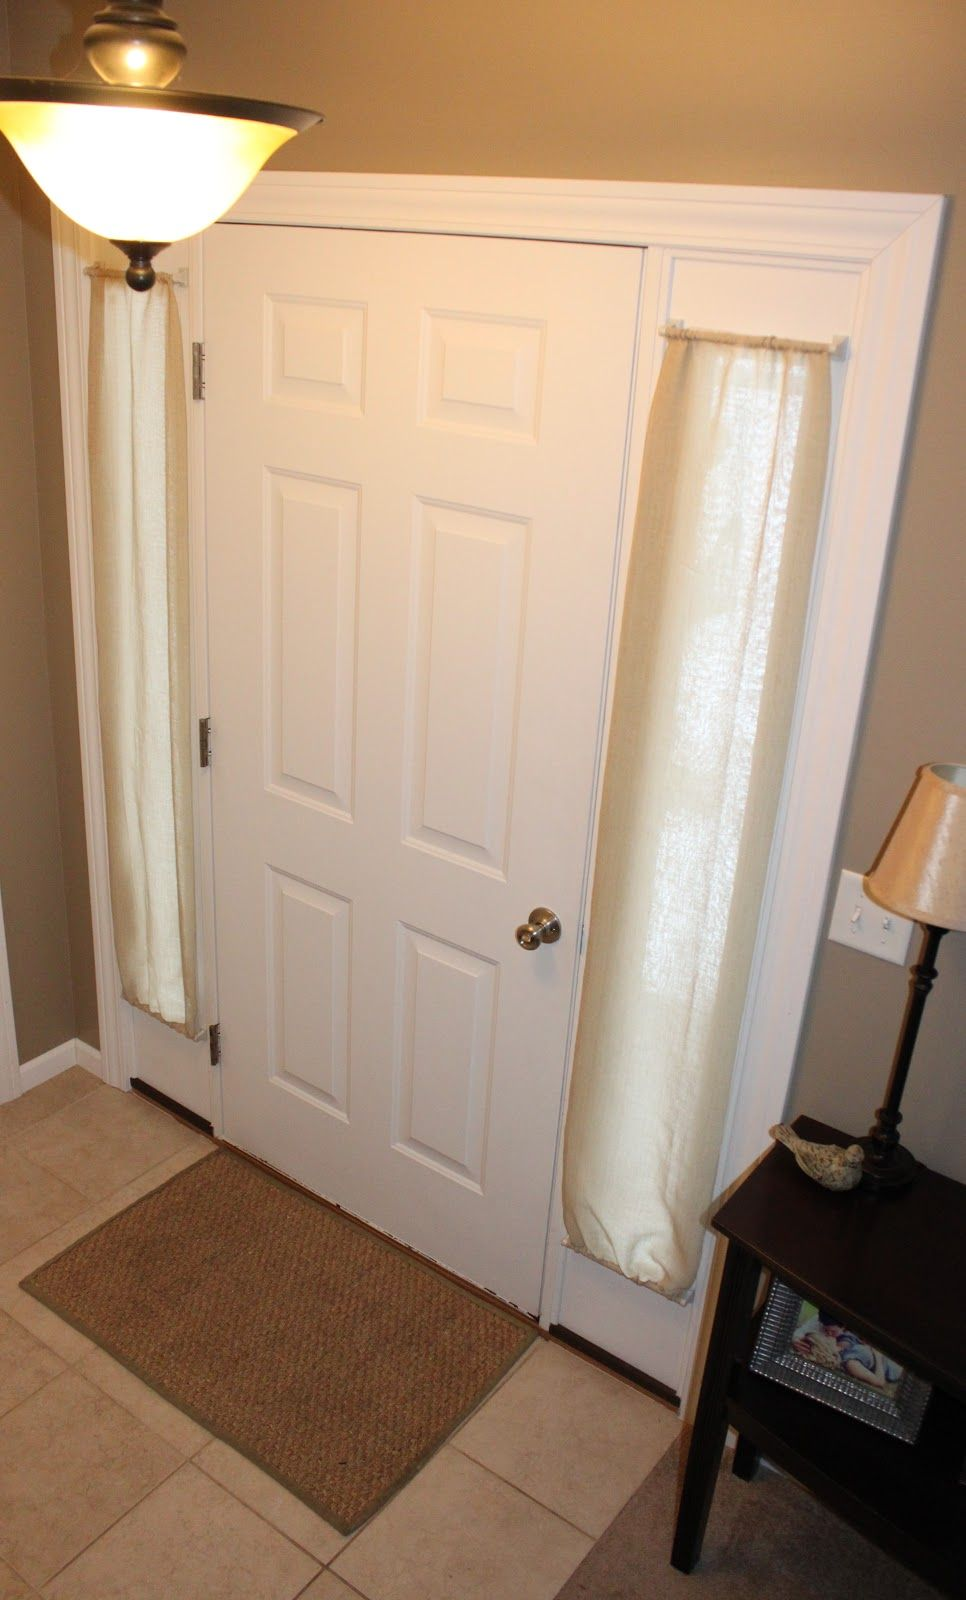 Charmant Front Door Curtains, How To, DIY (note: Magnetic Curtain Rods) (small Door  Crafts)